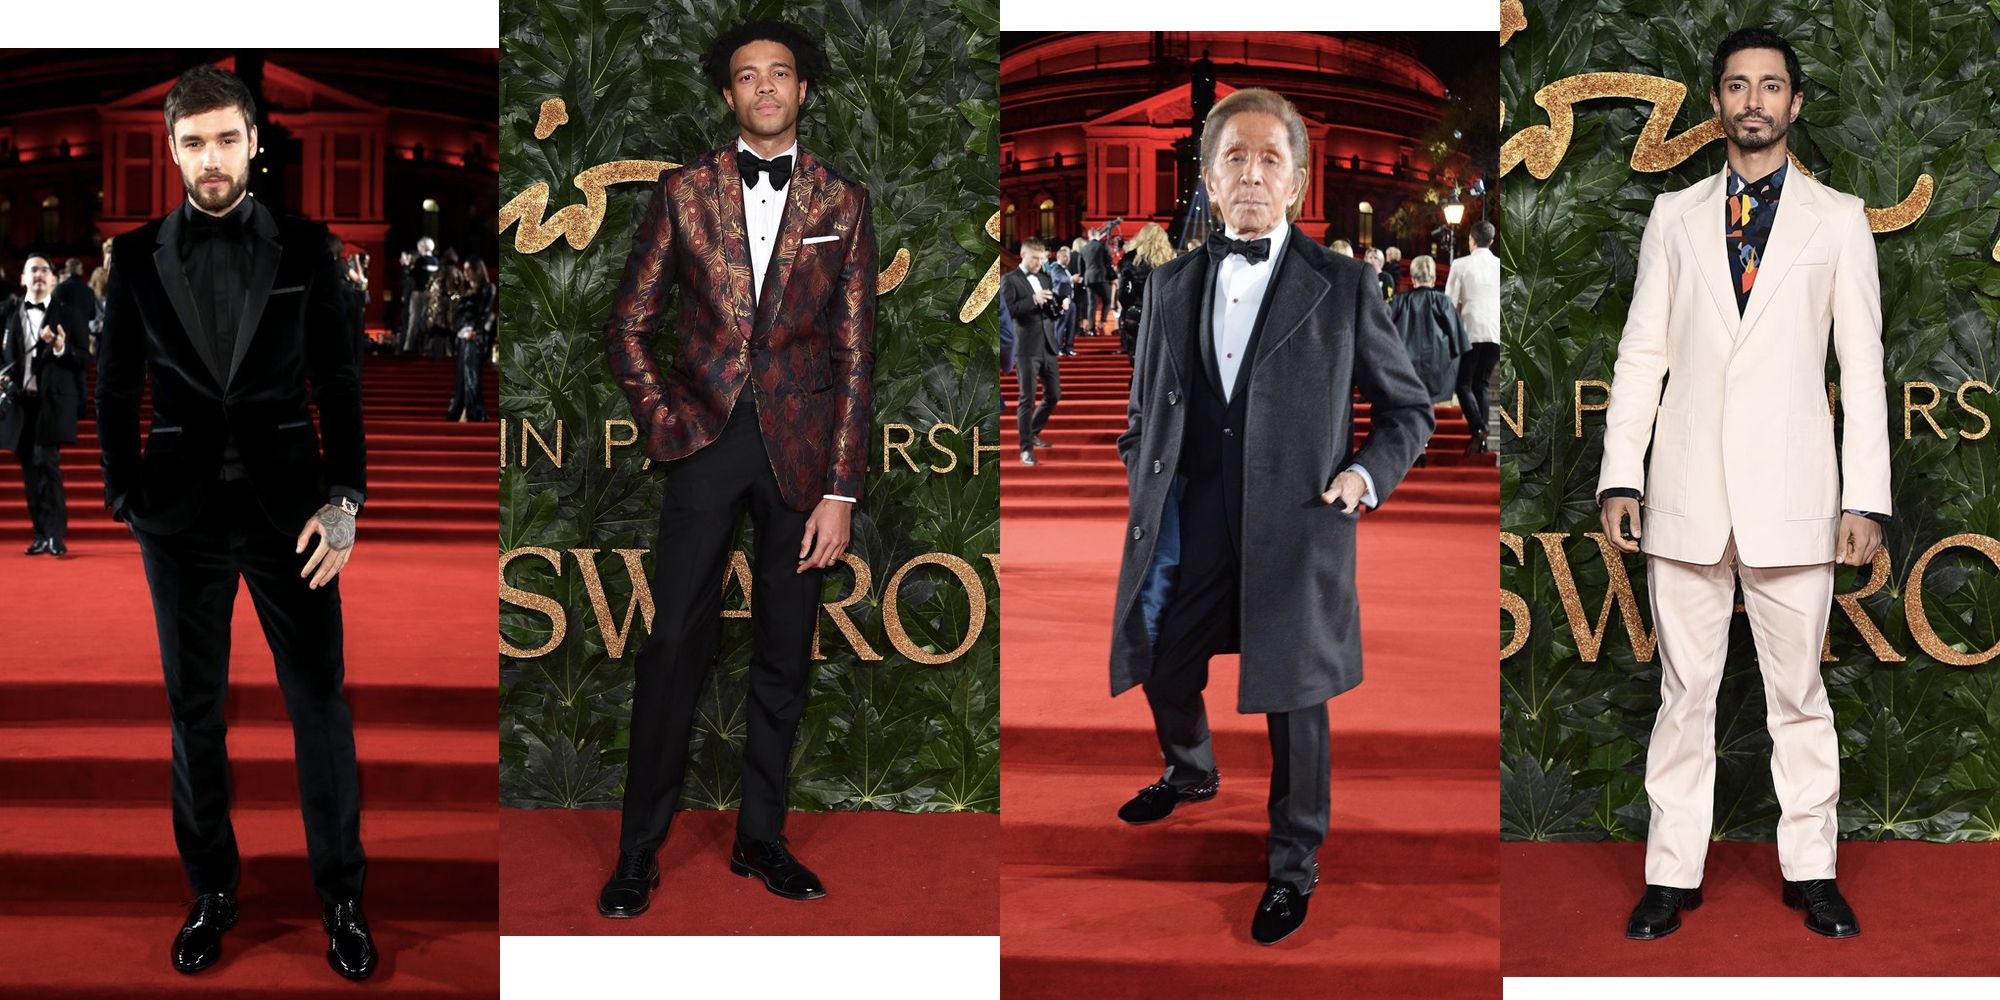 All Of The Best-Dressed Men At The Fashion Awards 2018